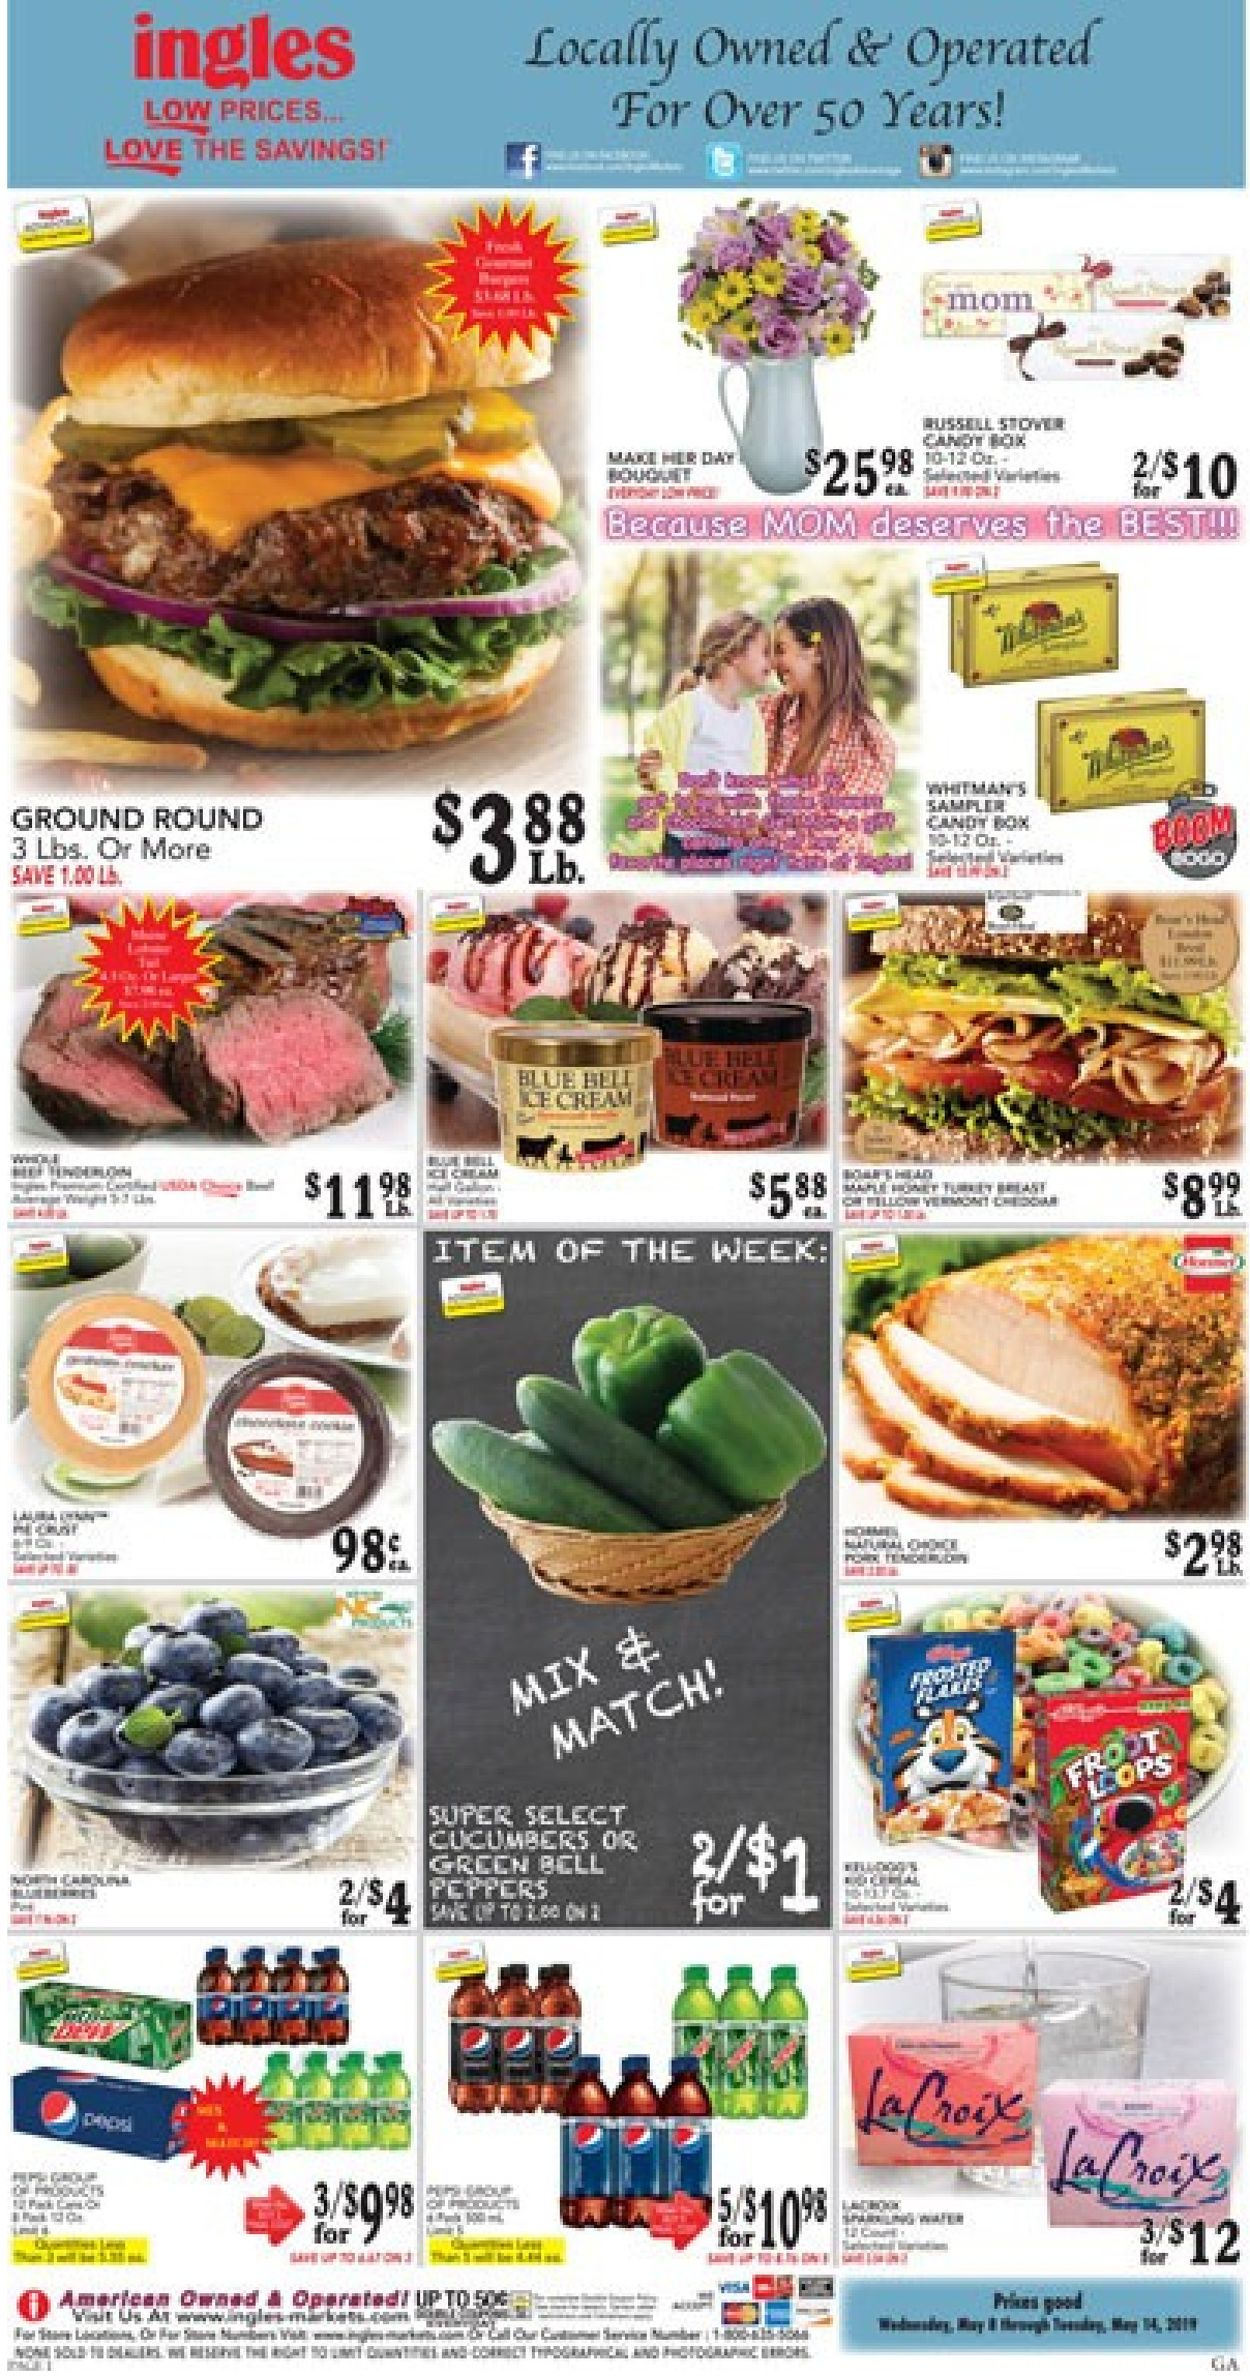 Ingles Current weekly ad 05/08 - 05/14/2019 - frequent-ads com